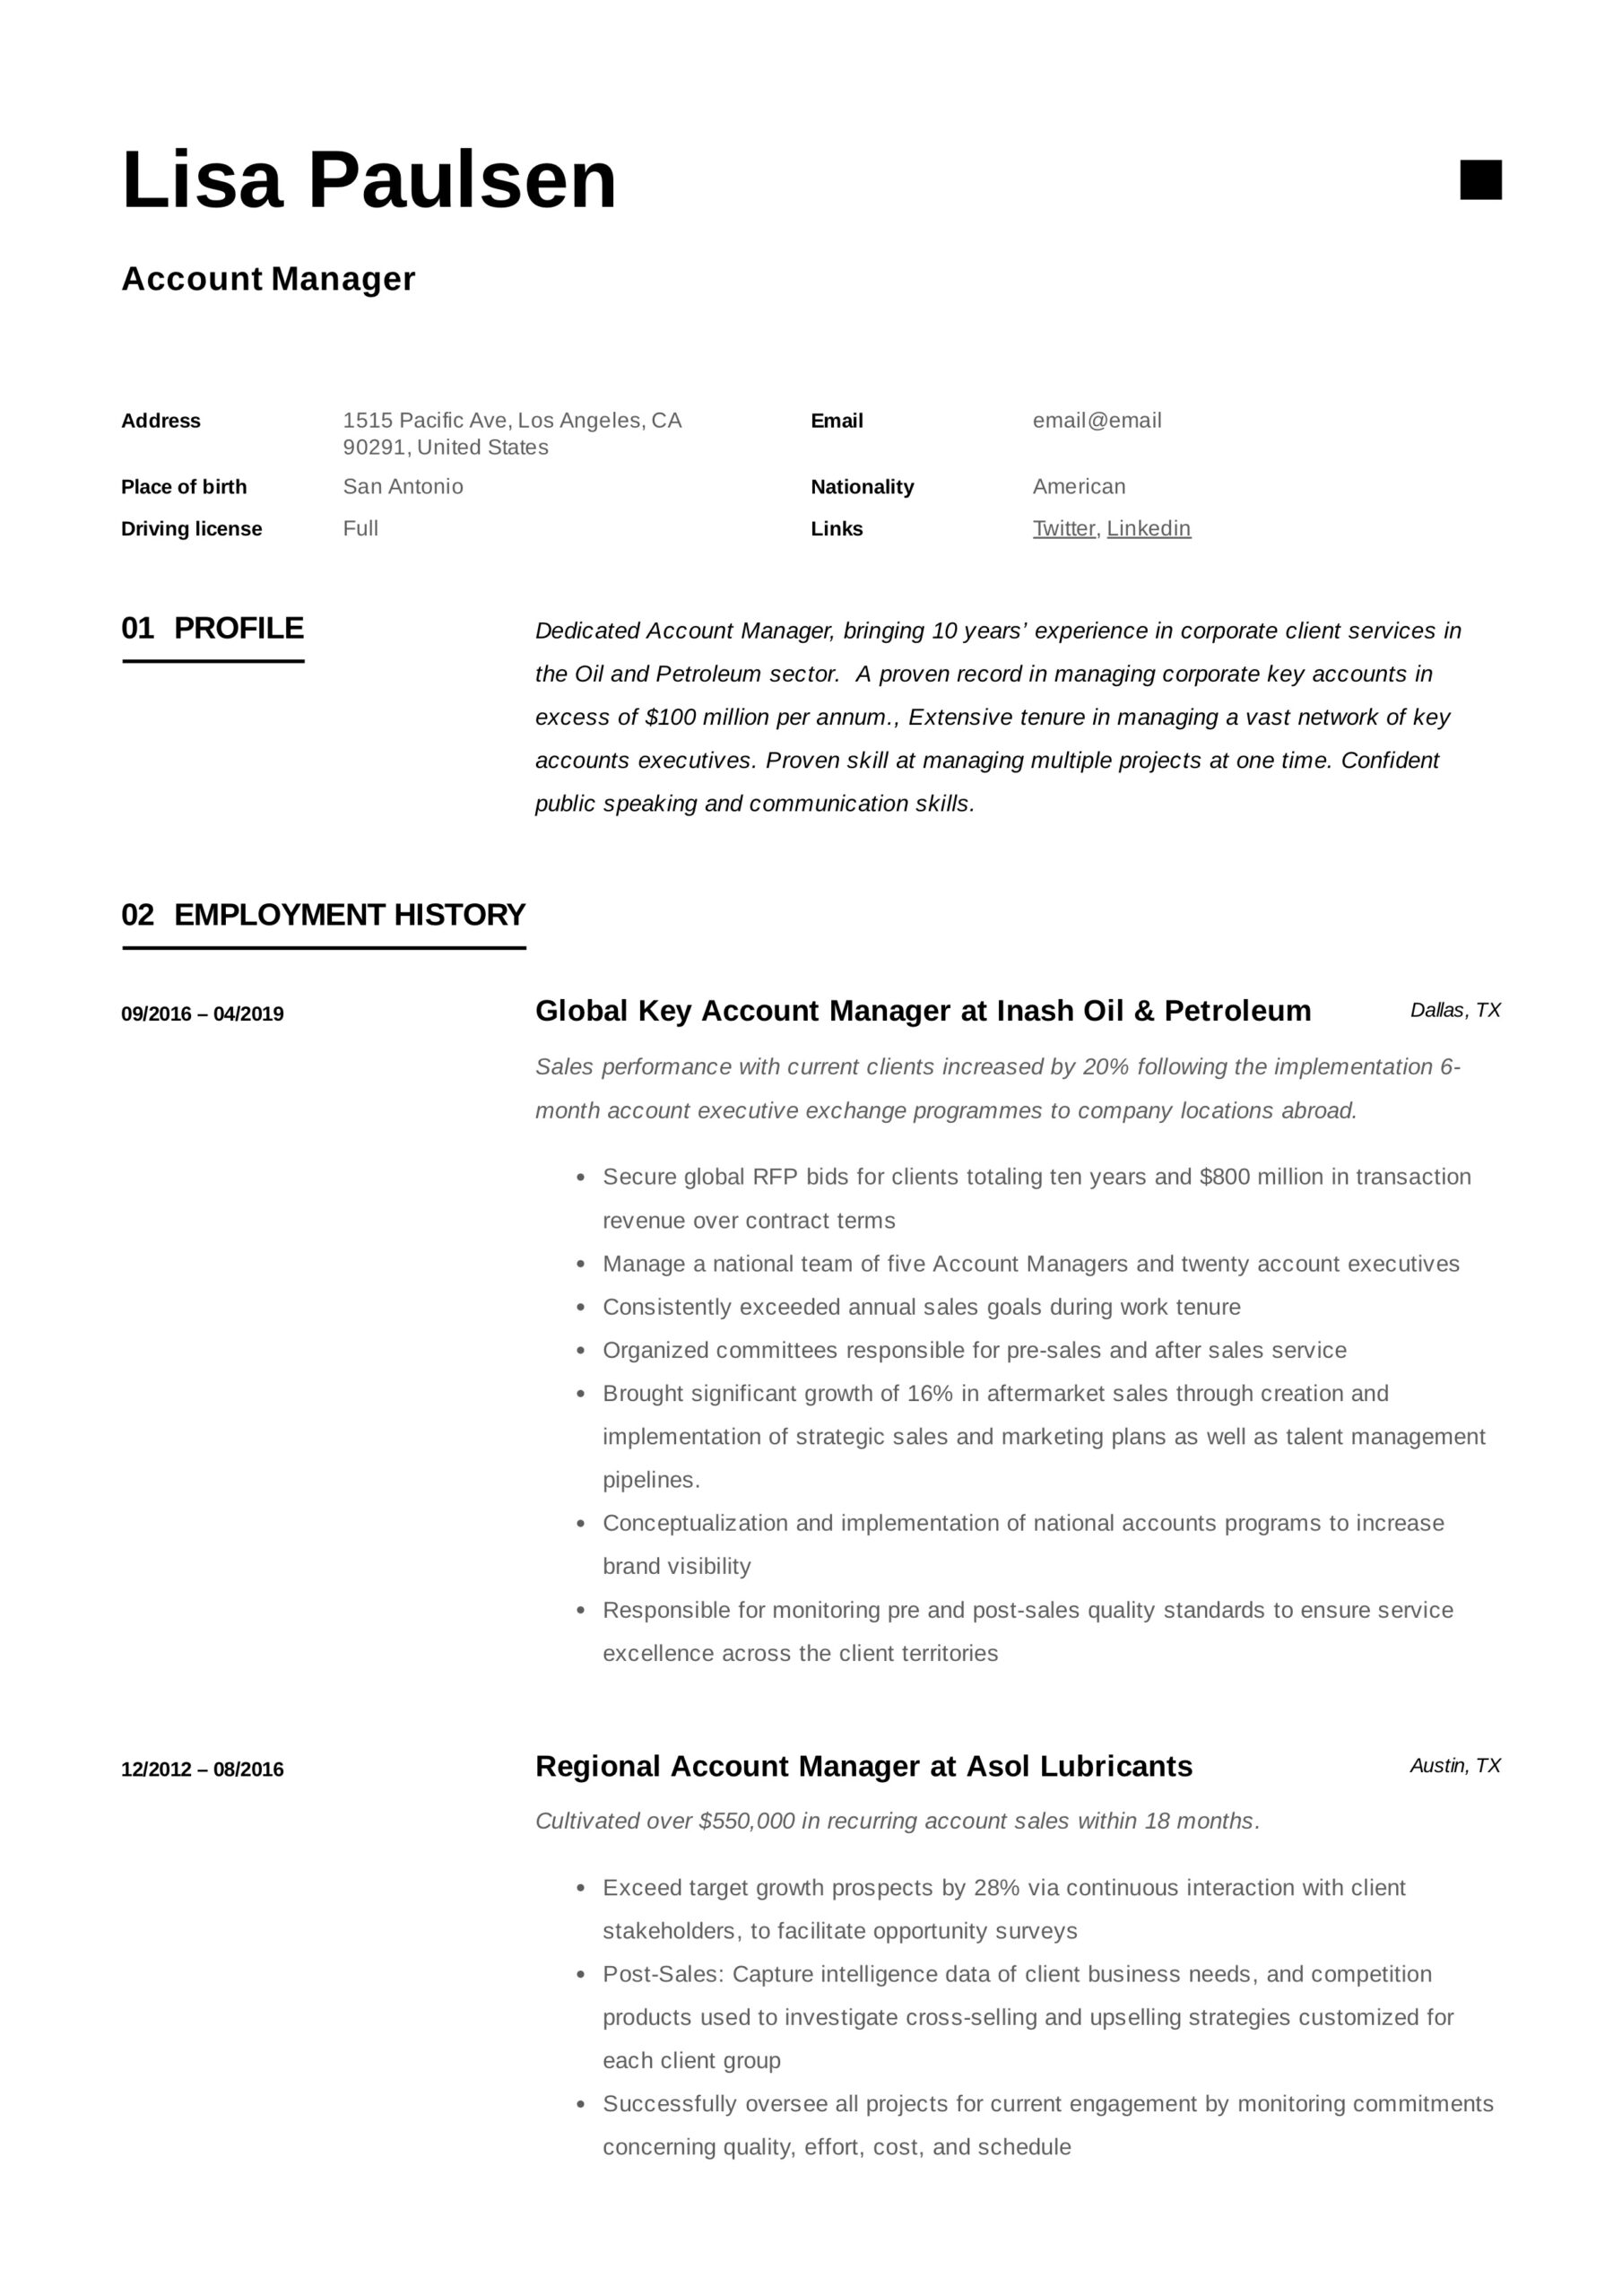 account manager resume writing guide examples executive lisa paulsen nurse practitioner Resume Executive Account Manager Resume